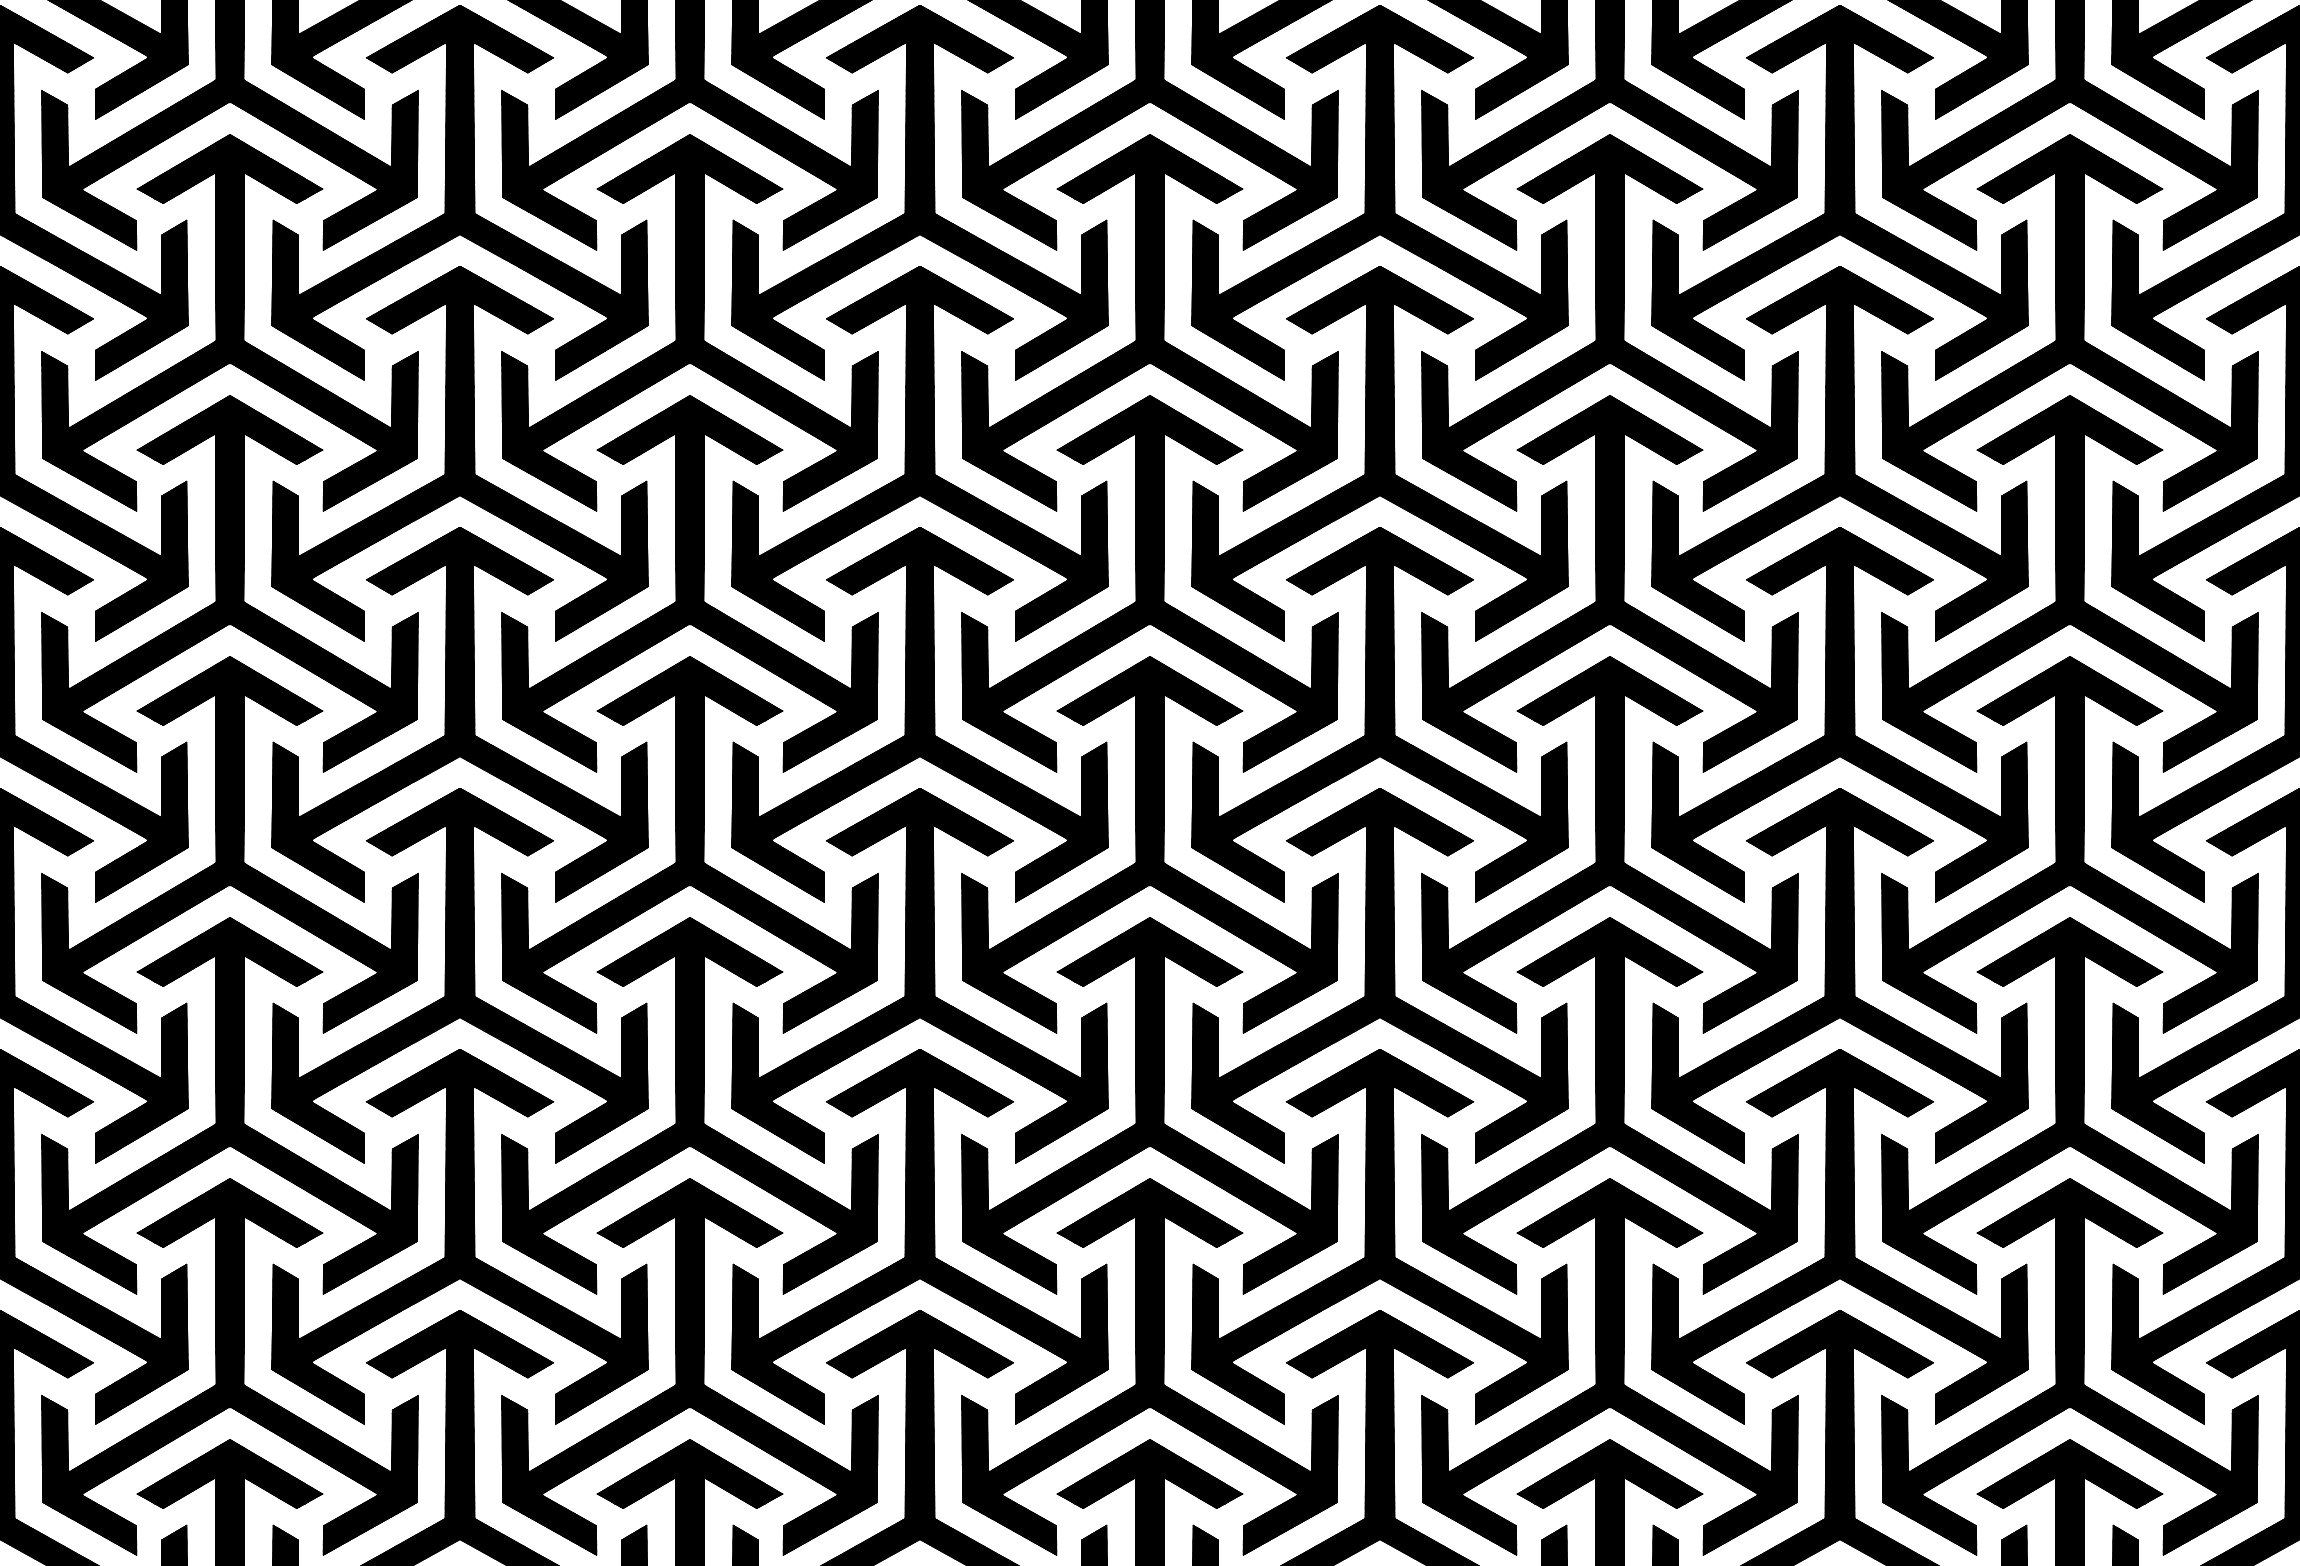 Png pattern. Photo peoplepng com